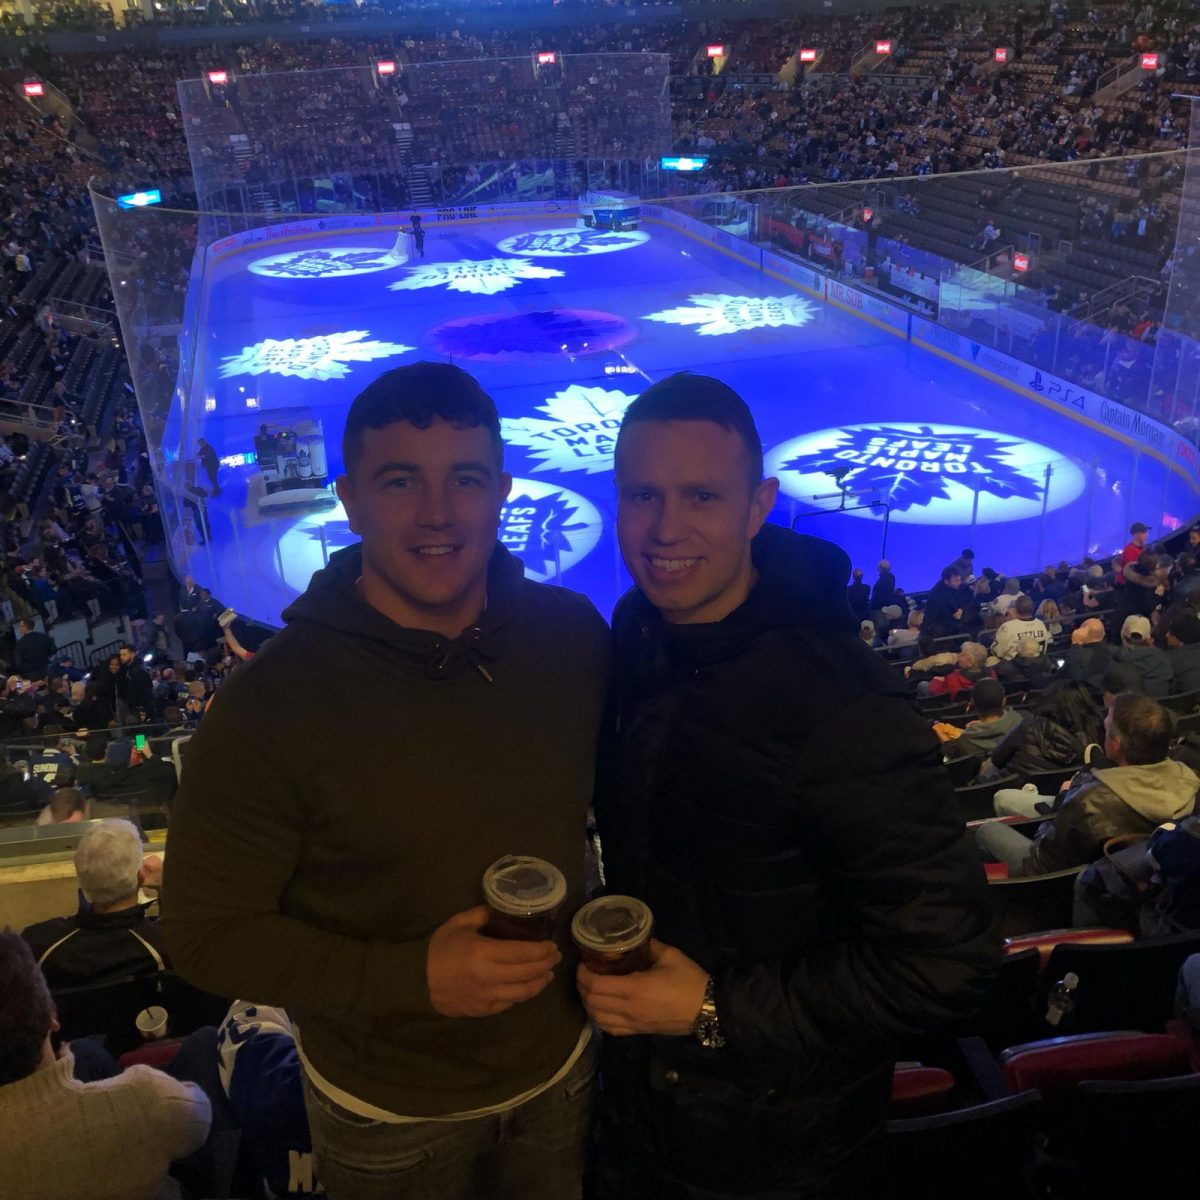 Chris and Carl at Toronto Maple Leafs game